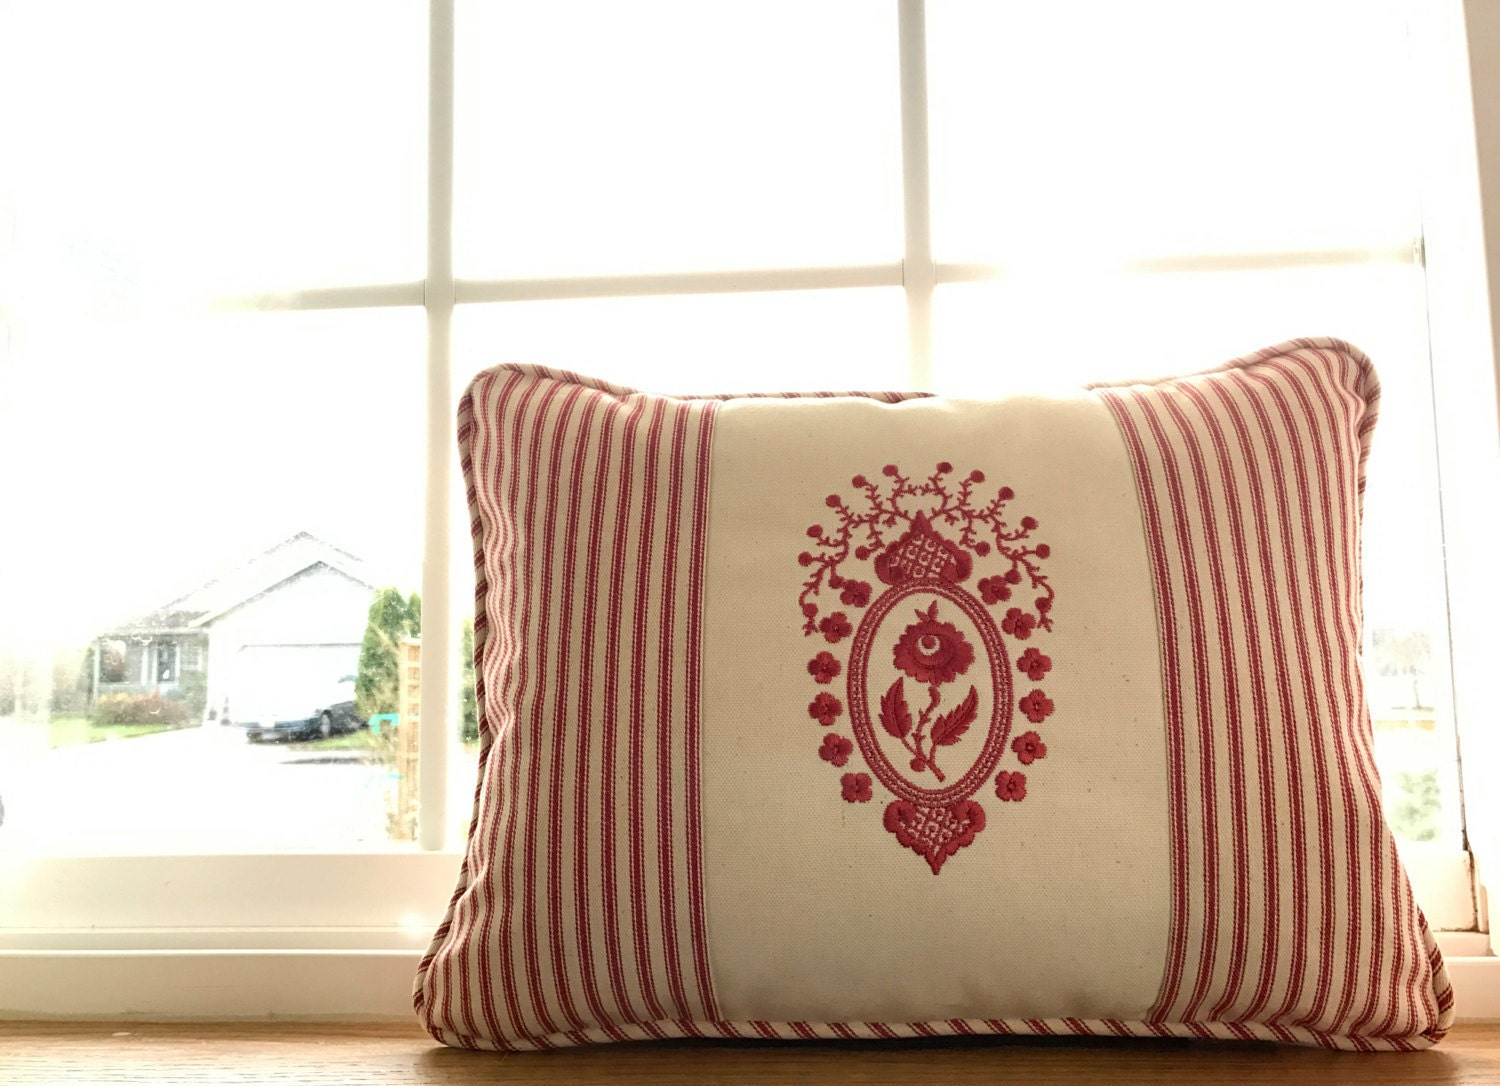 DAR Rose Medallion Embroidered Cranberry Pillow